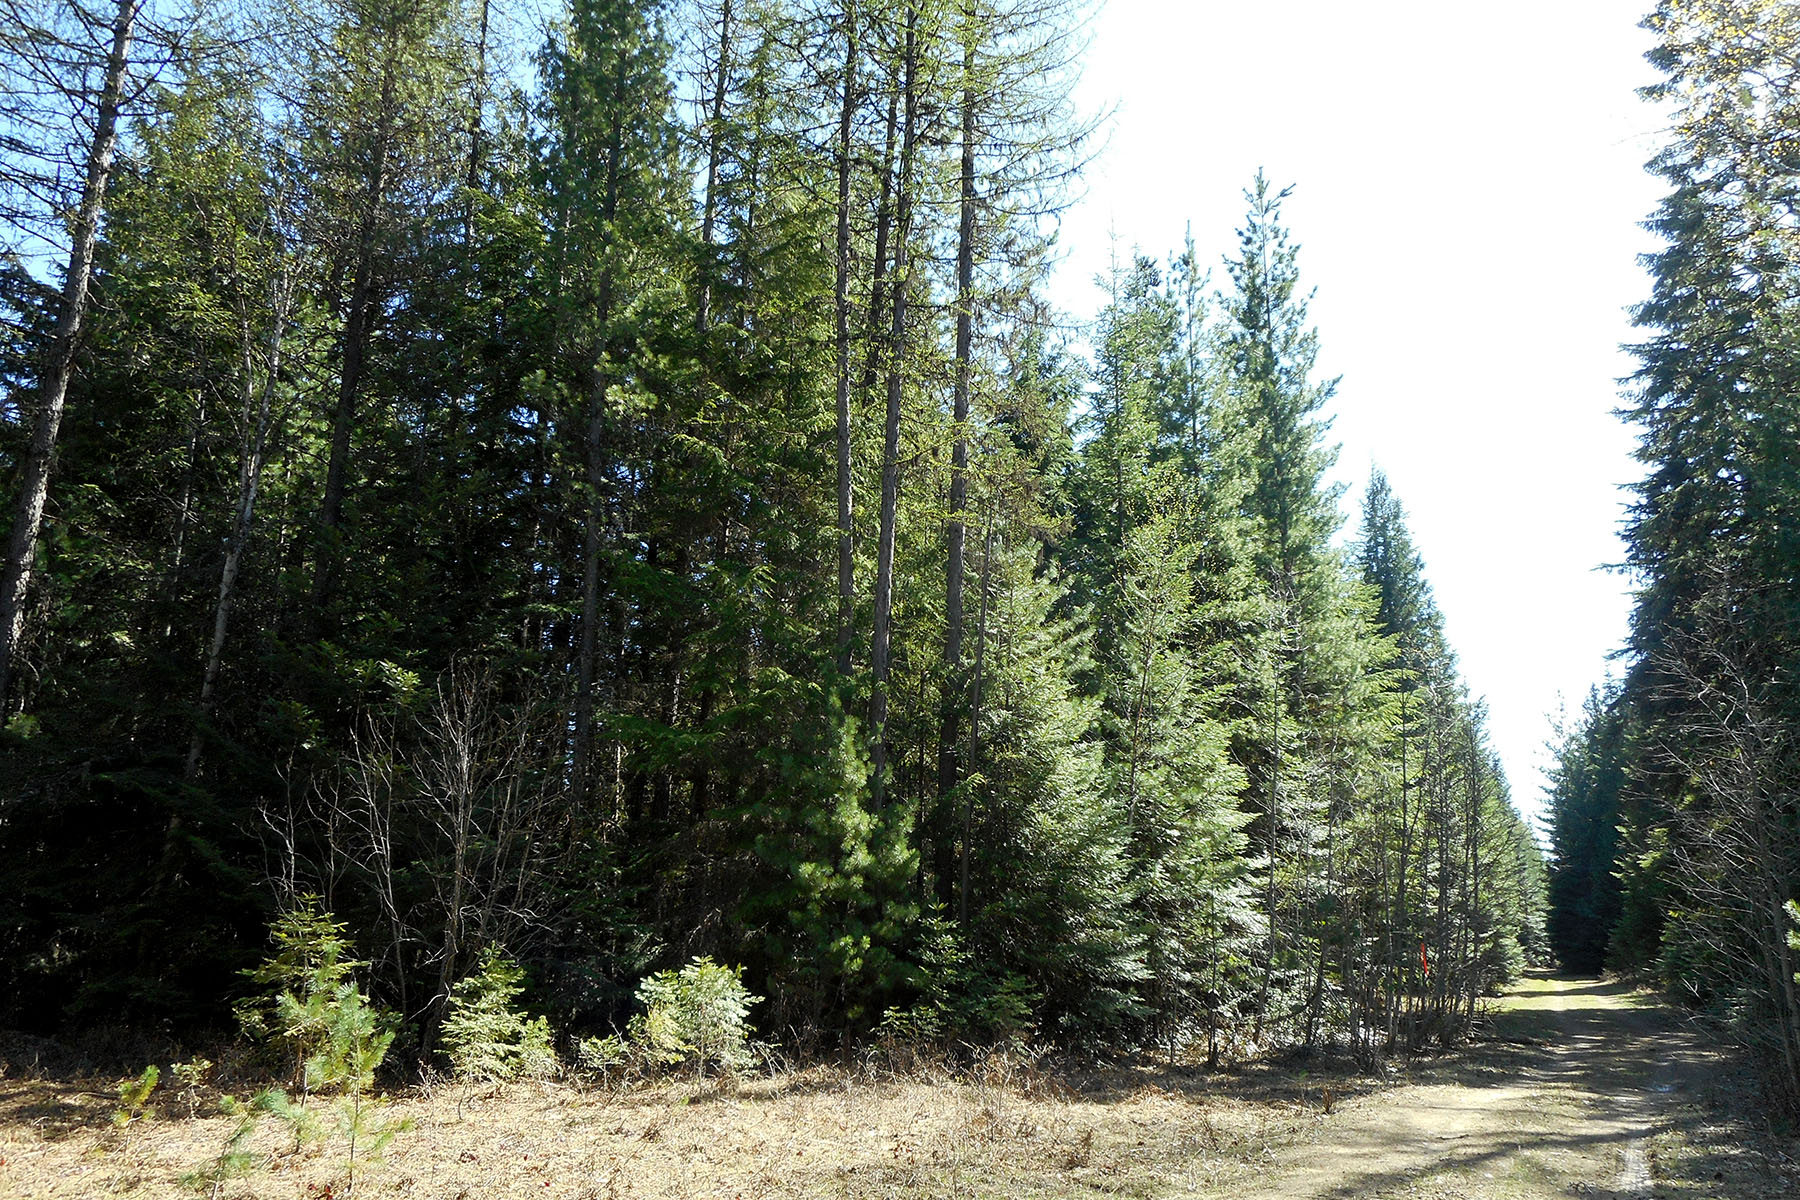 Land for Sale at Private wooded 5 acre parcel NNA 5 acre Off C Street Sandpoint, Idaho, 83864 United States